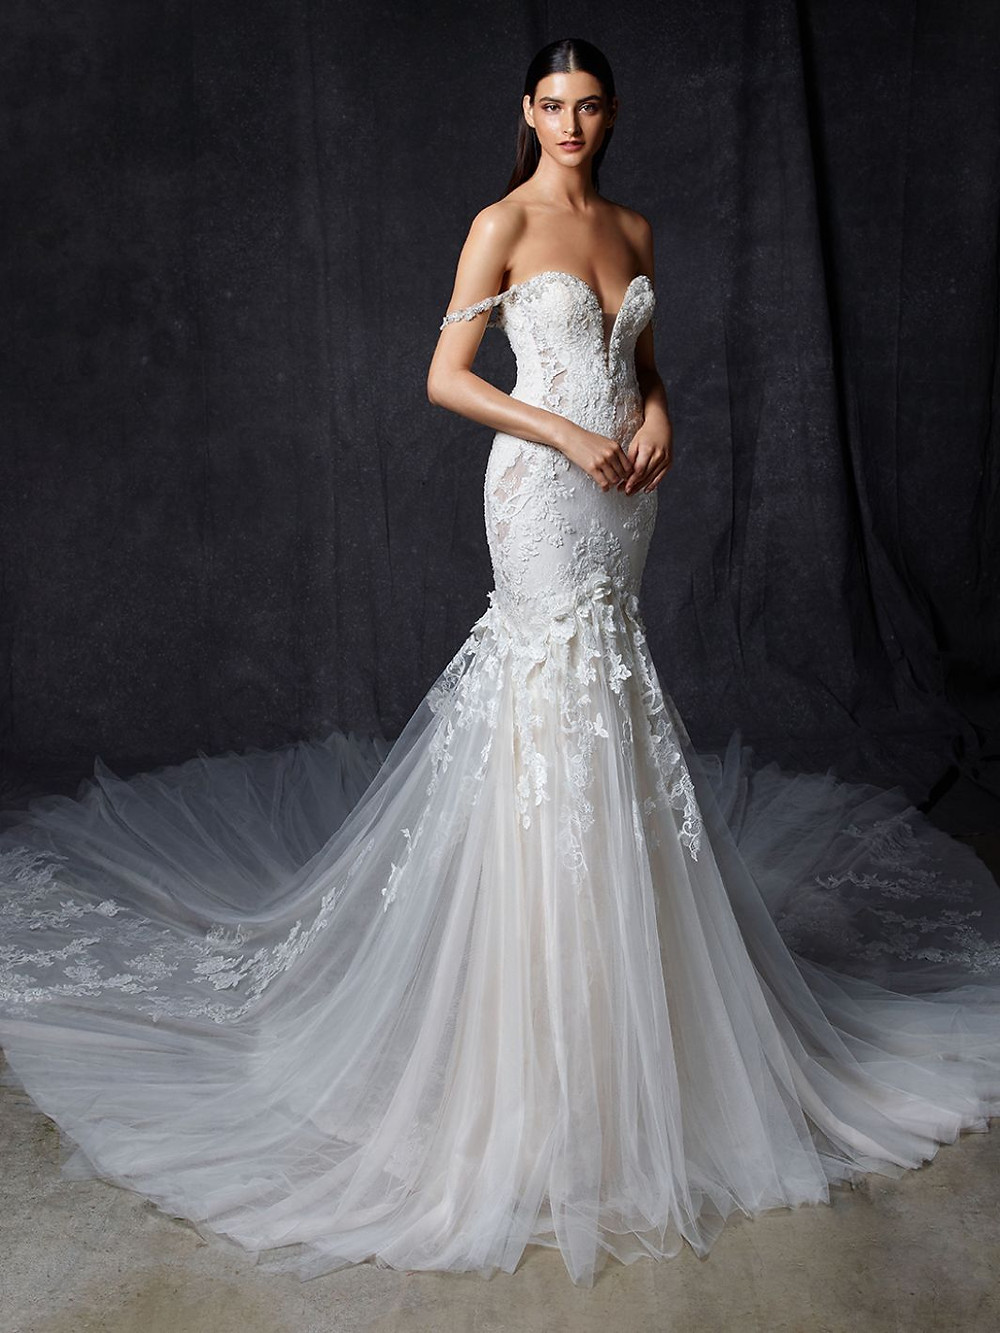 An Enzoani off the shoulder lace mermaid wedding dress with a tulle skirt and a sweetheart neckline